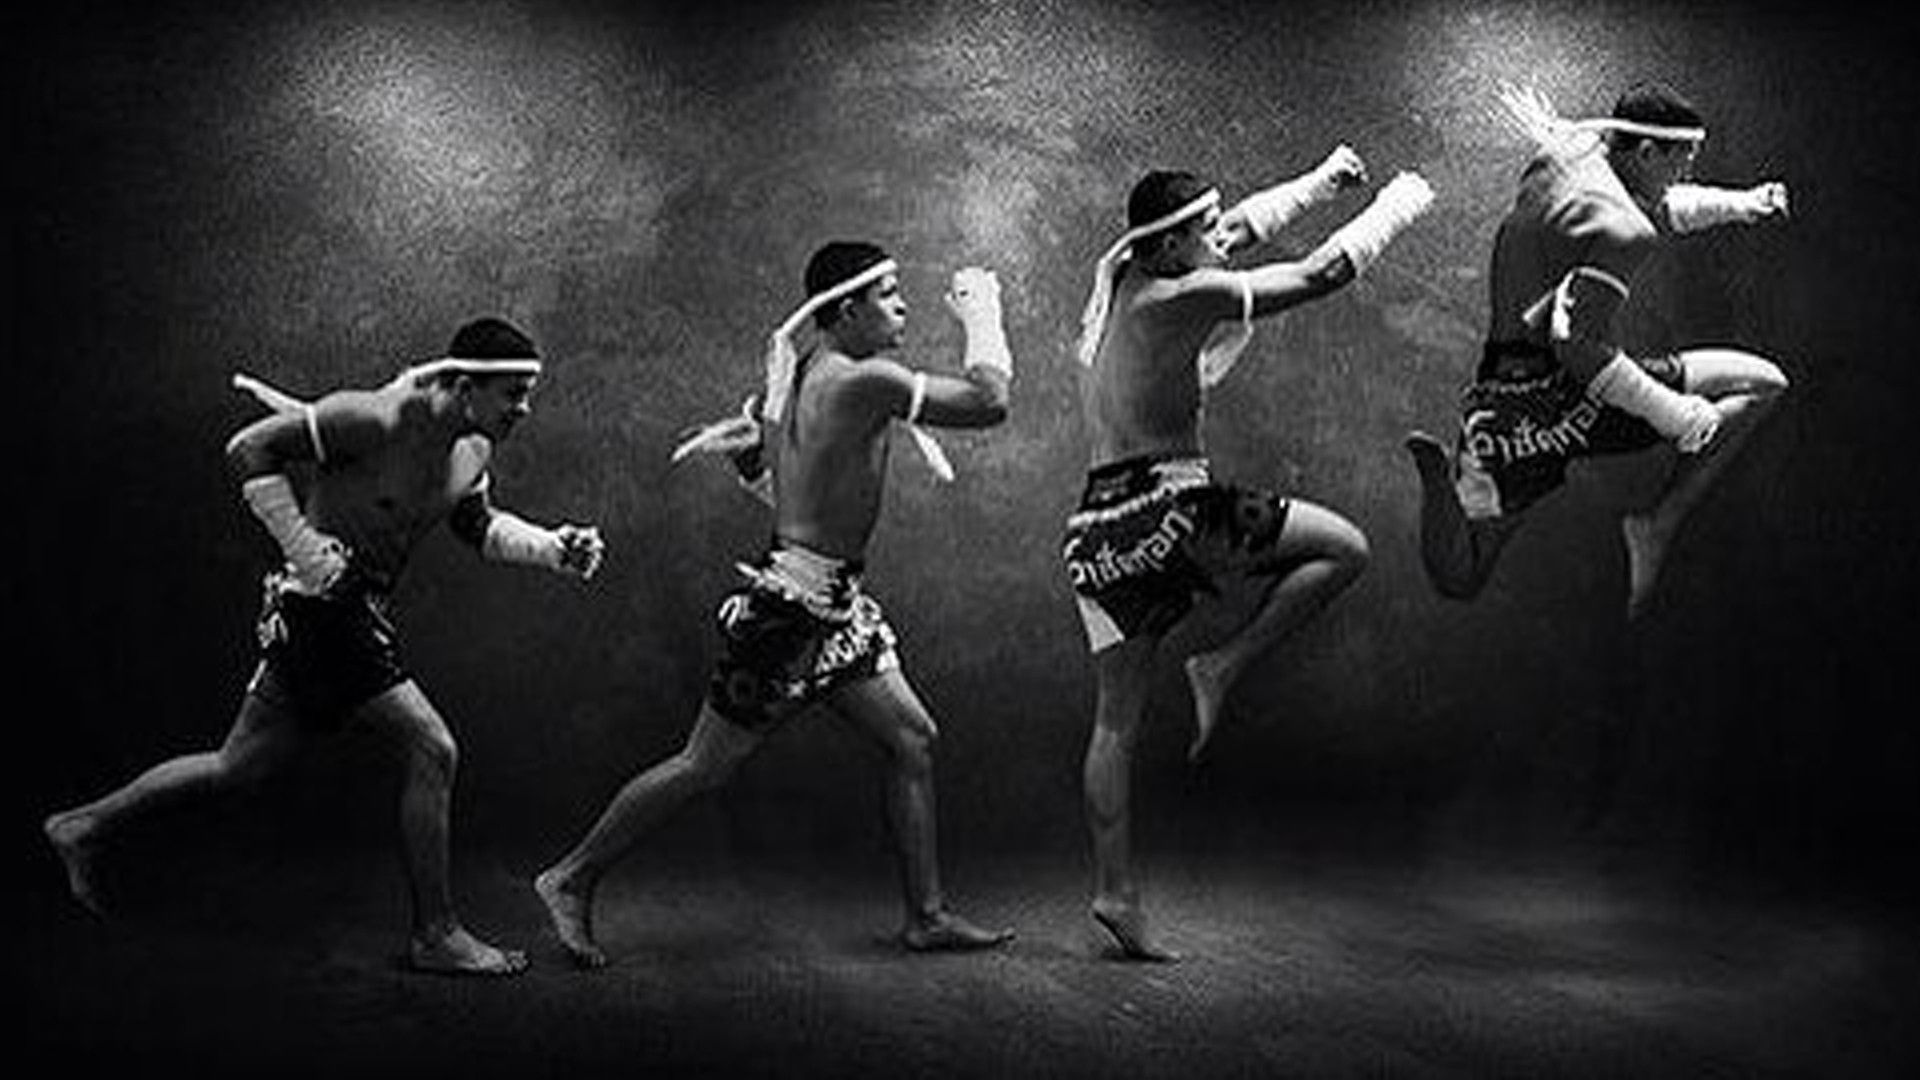 Muay Thai Wallpapers Top Free Muay Thai Backgrounds Wallpaperaccess